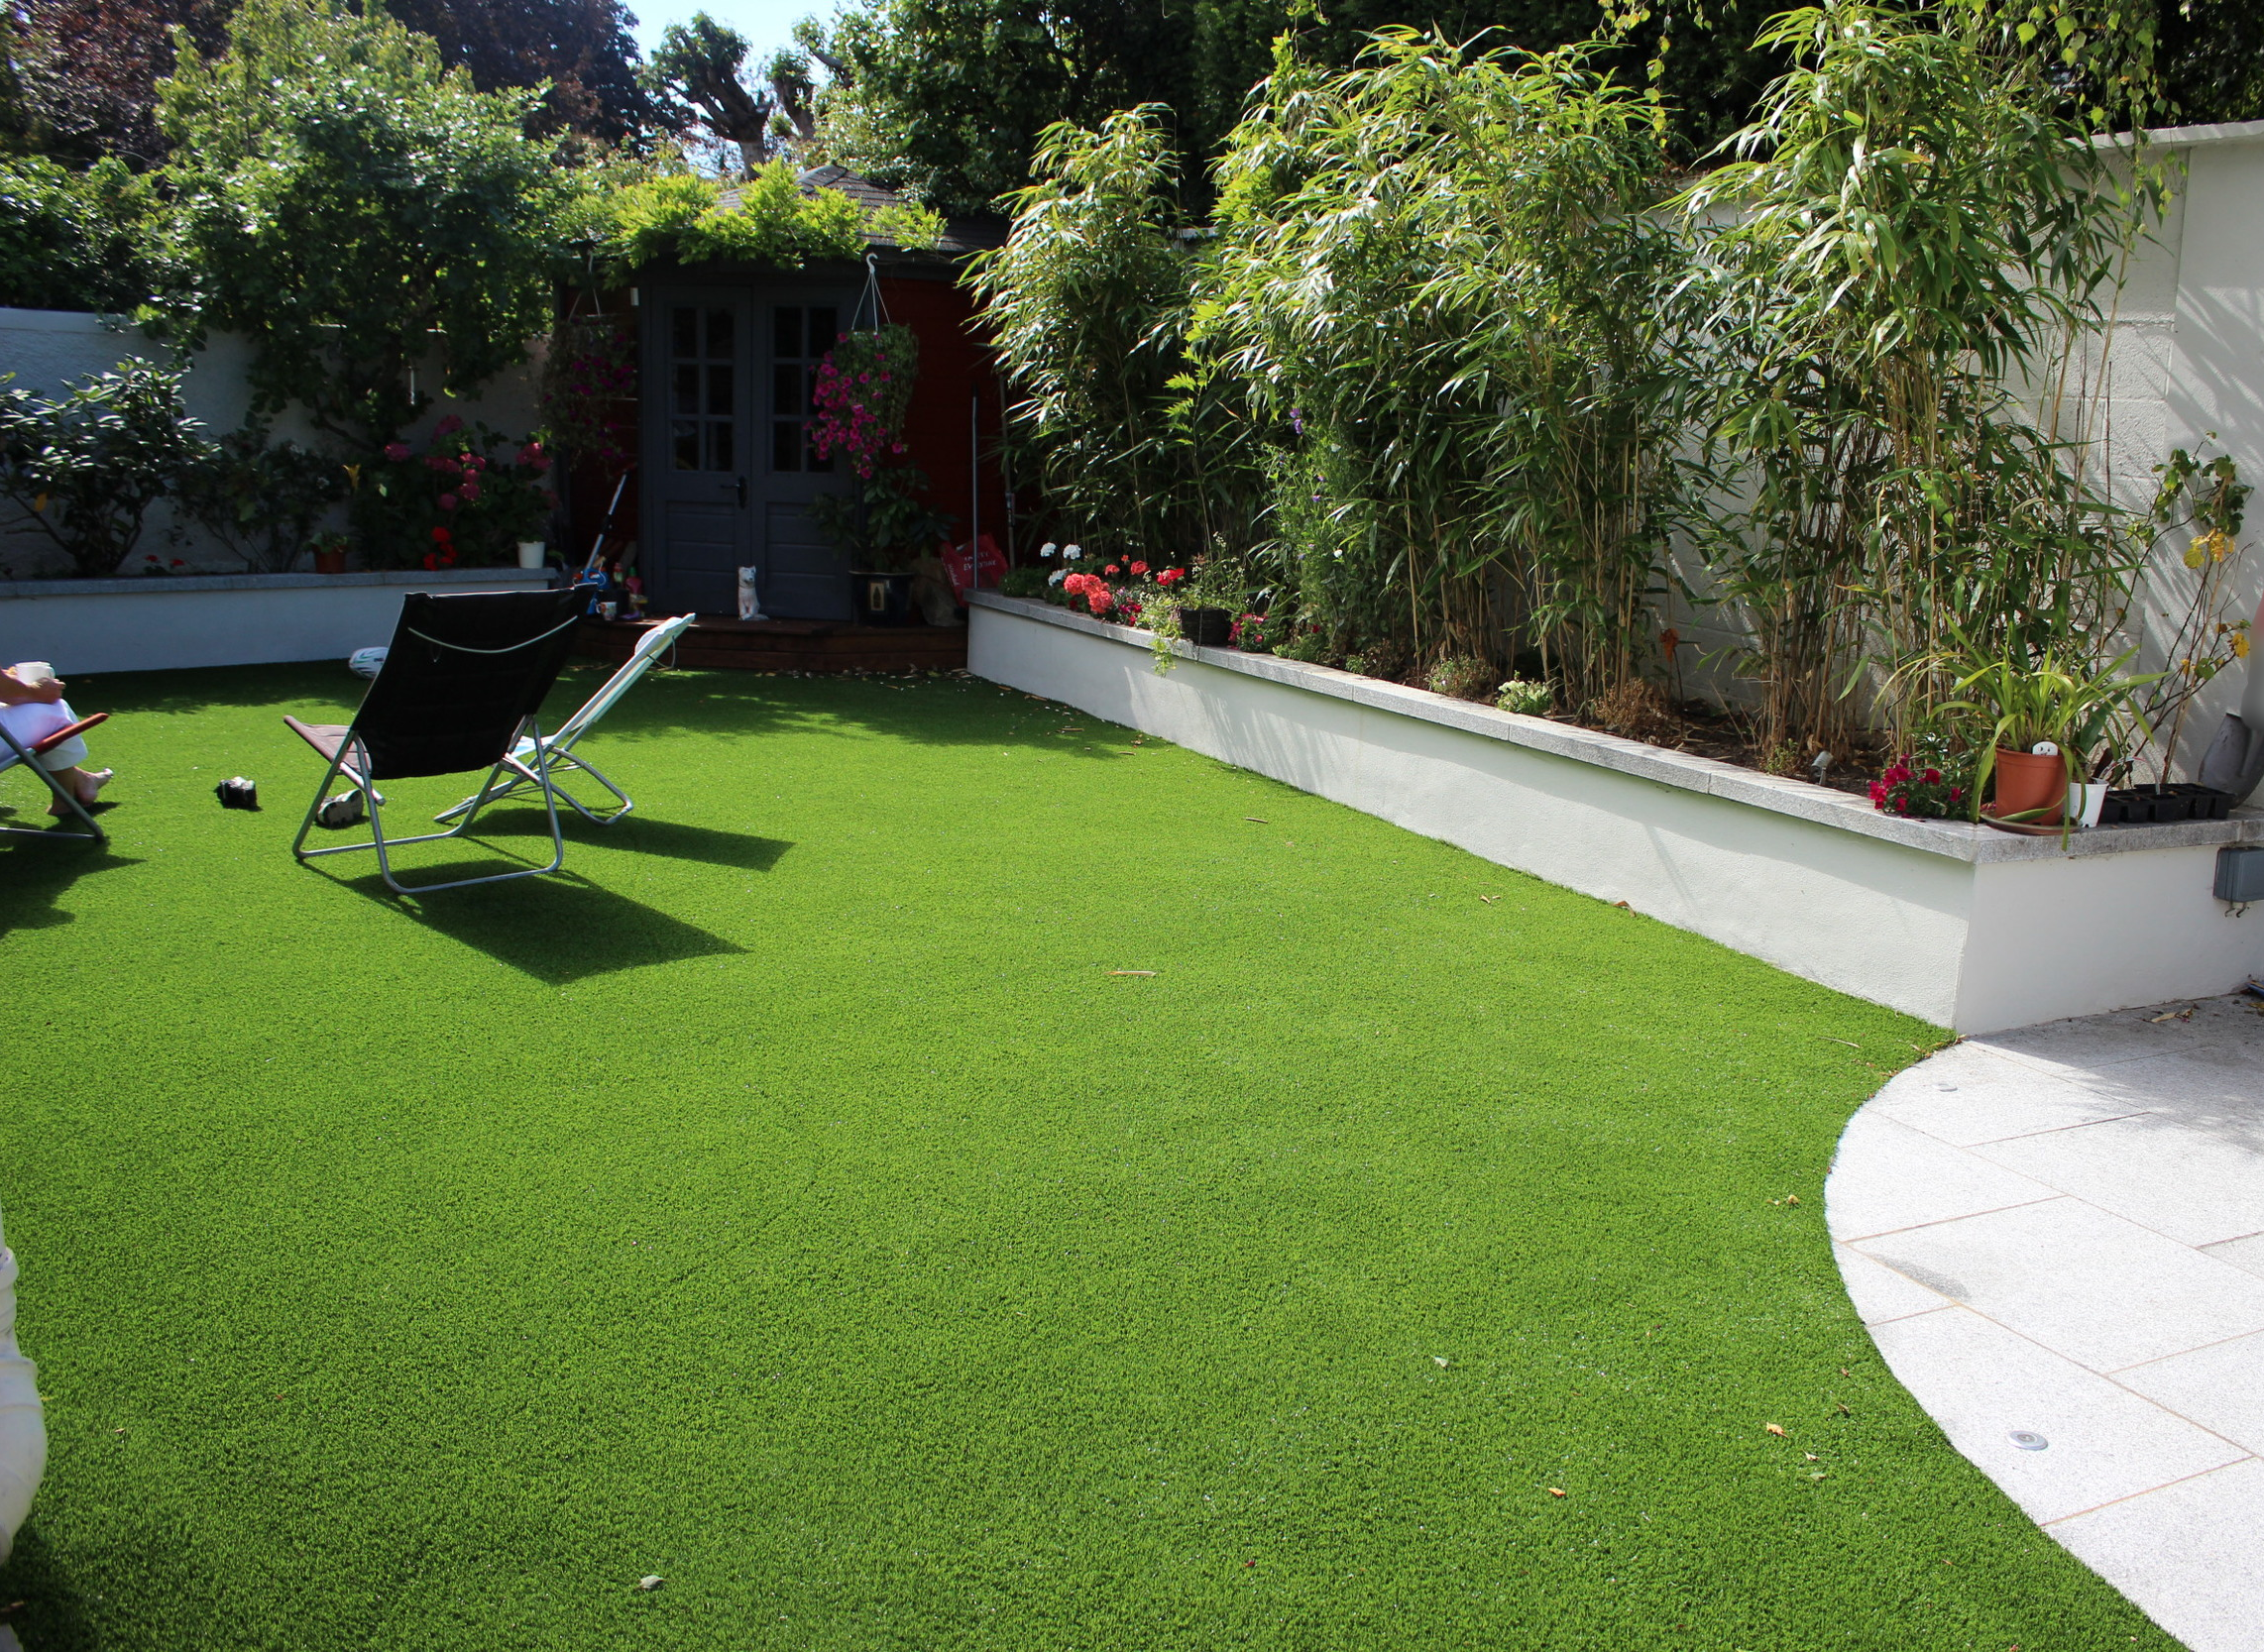 tigerturf vision plus deluxe artificial grass